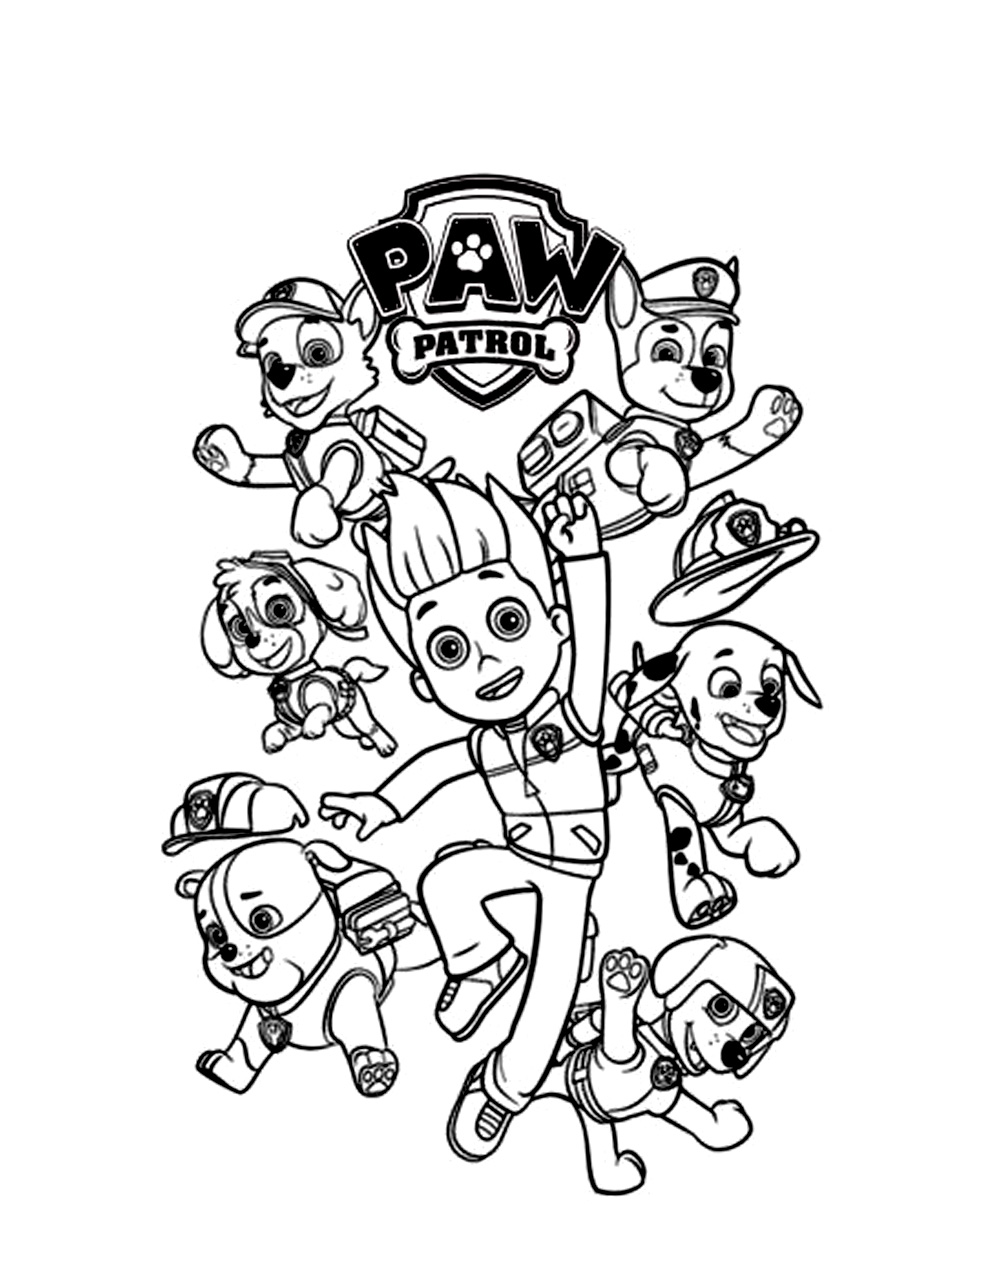 paw patrol coloring characters paw patrol free to color for kids paw patrol kids paw patrol coloring characters